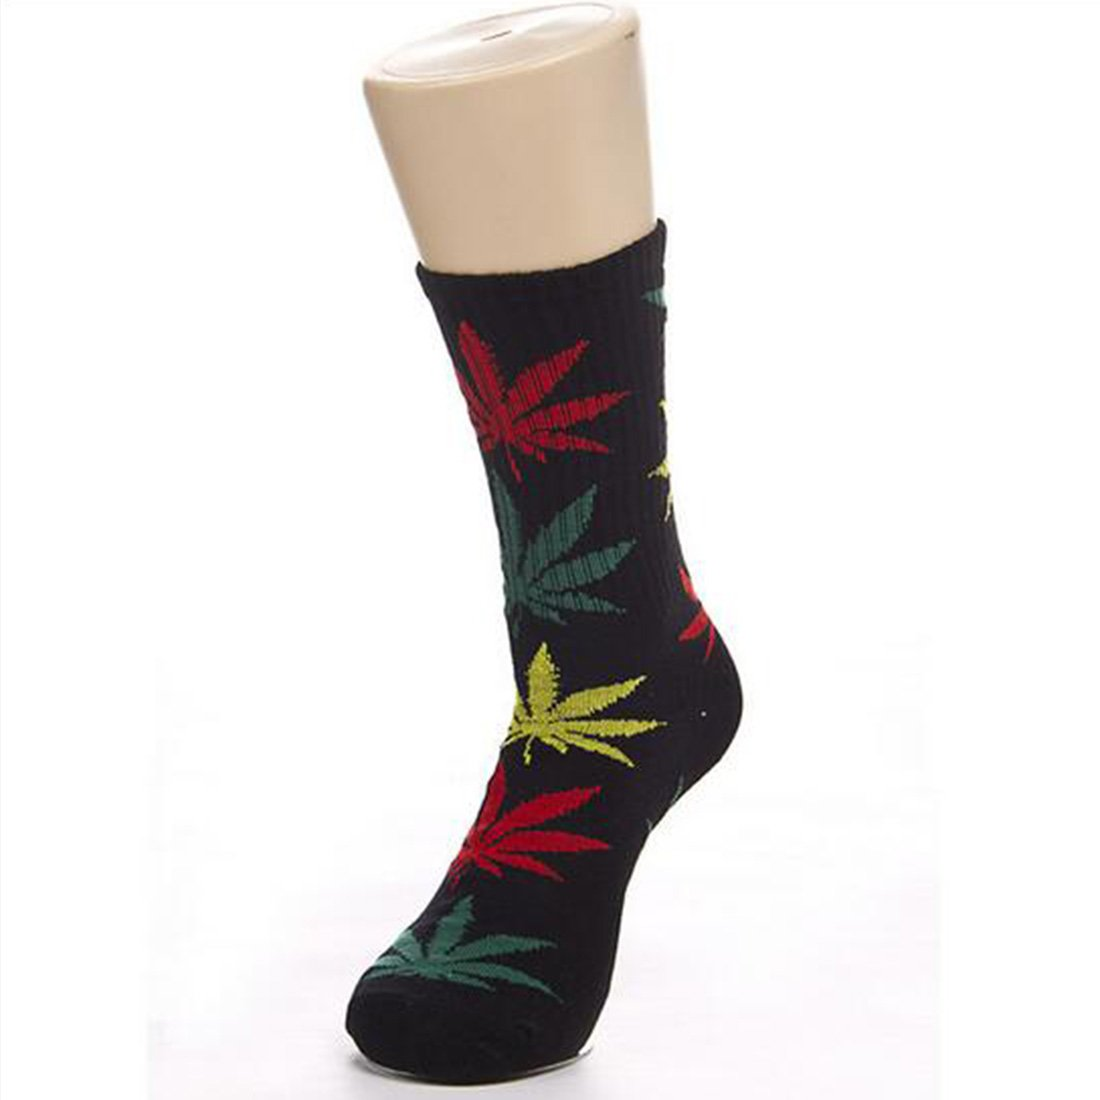 Amazon.com: Leaves Socks Medium Thick Outdoor Sports Weeds Socks Black+Green: Clothing